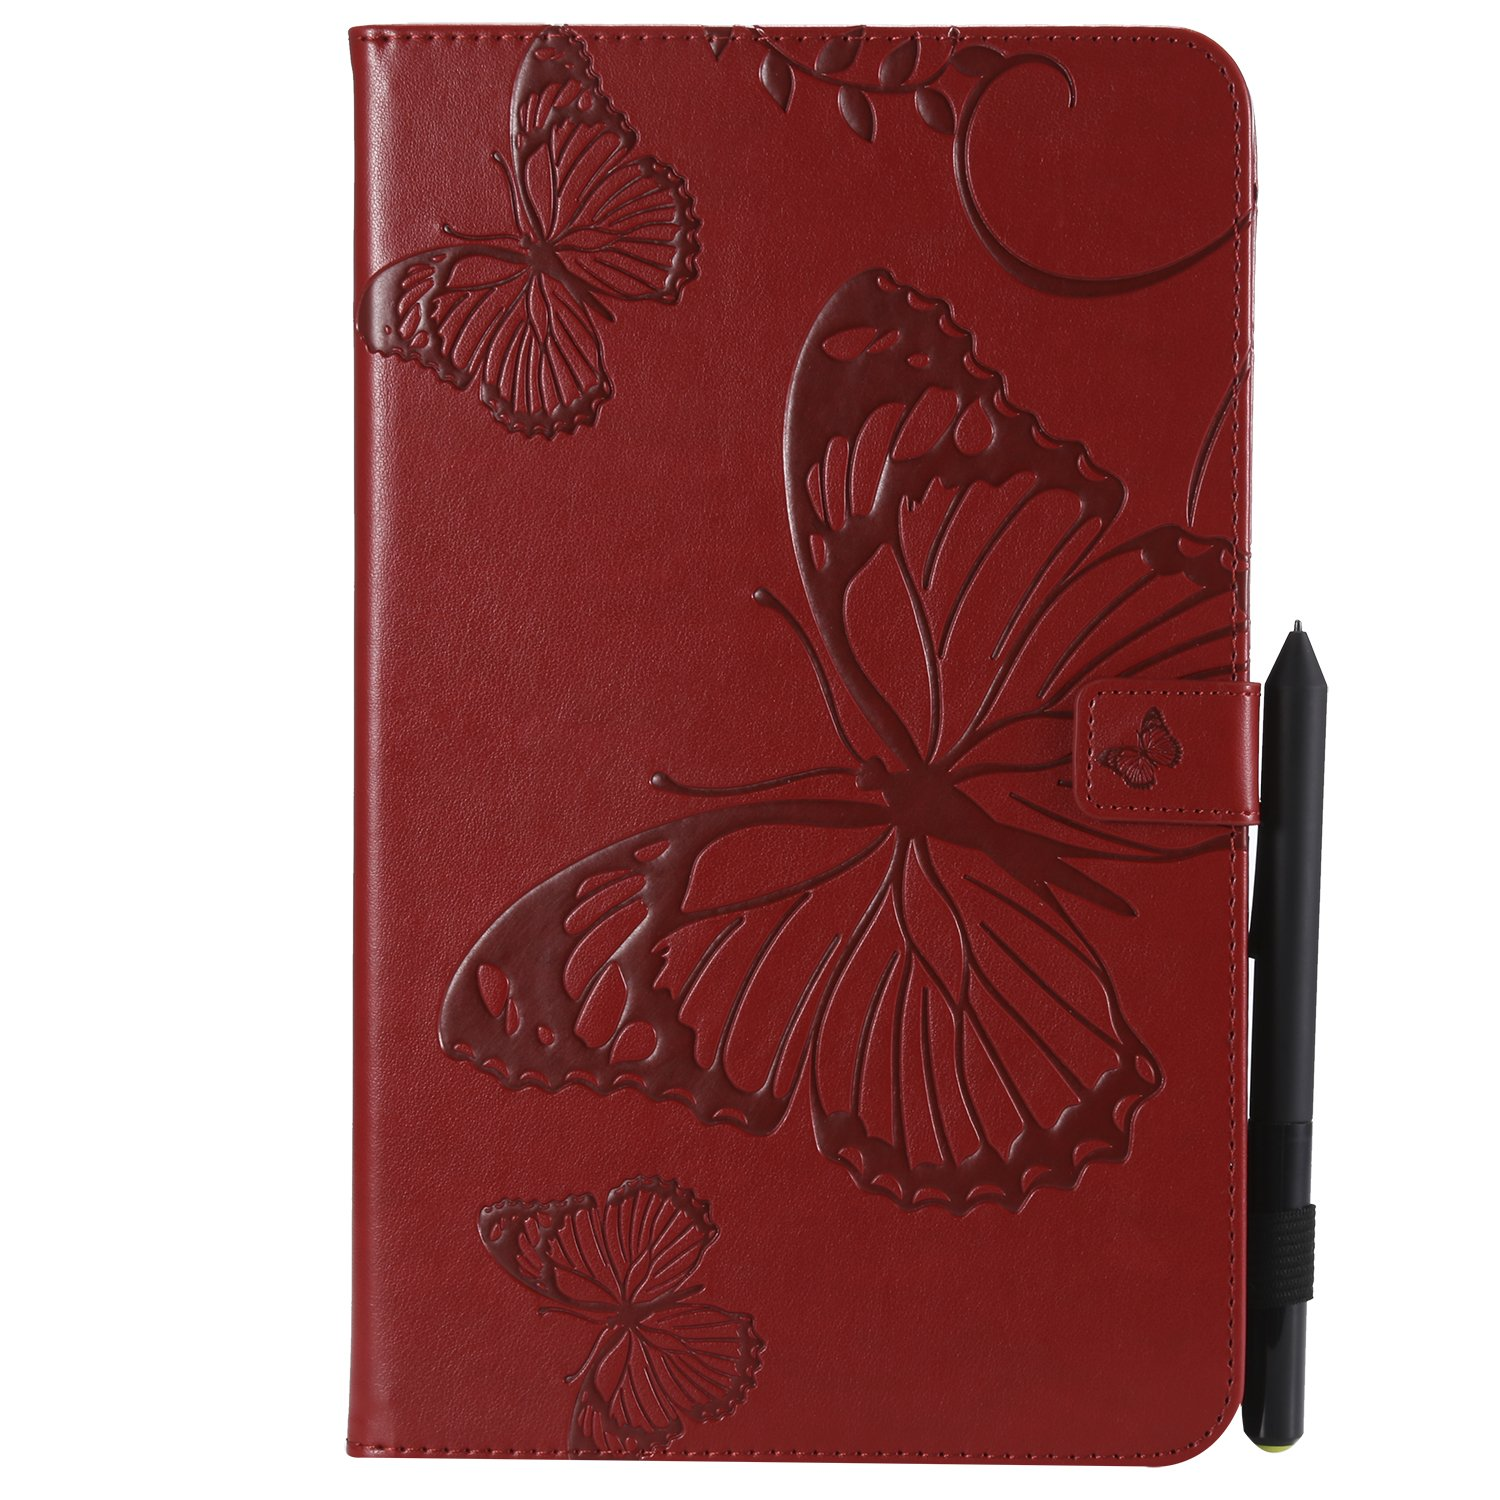 Bear Village Galaxy Tab a 10.1 Inch Case, Butterfly Embossed Anti Scratch Shell with Adjust Stand, Smart Stand PU Leather Case for Samsung Galaxy Tab a 10.1 Inch, Red